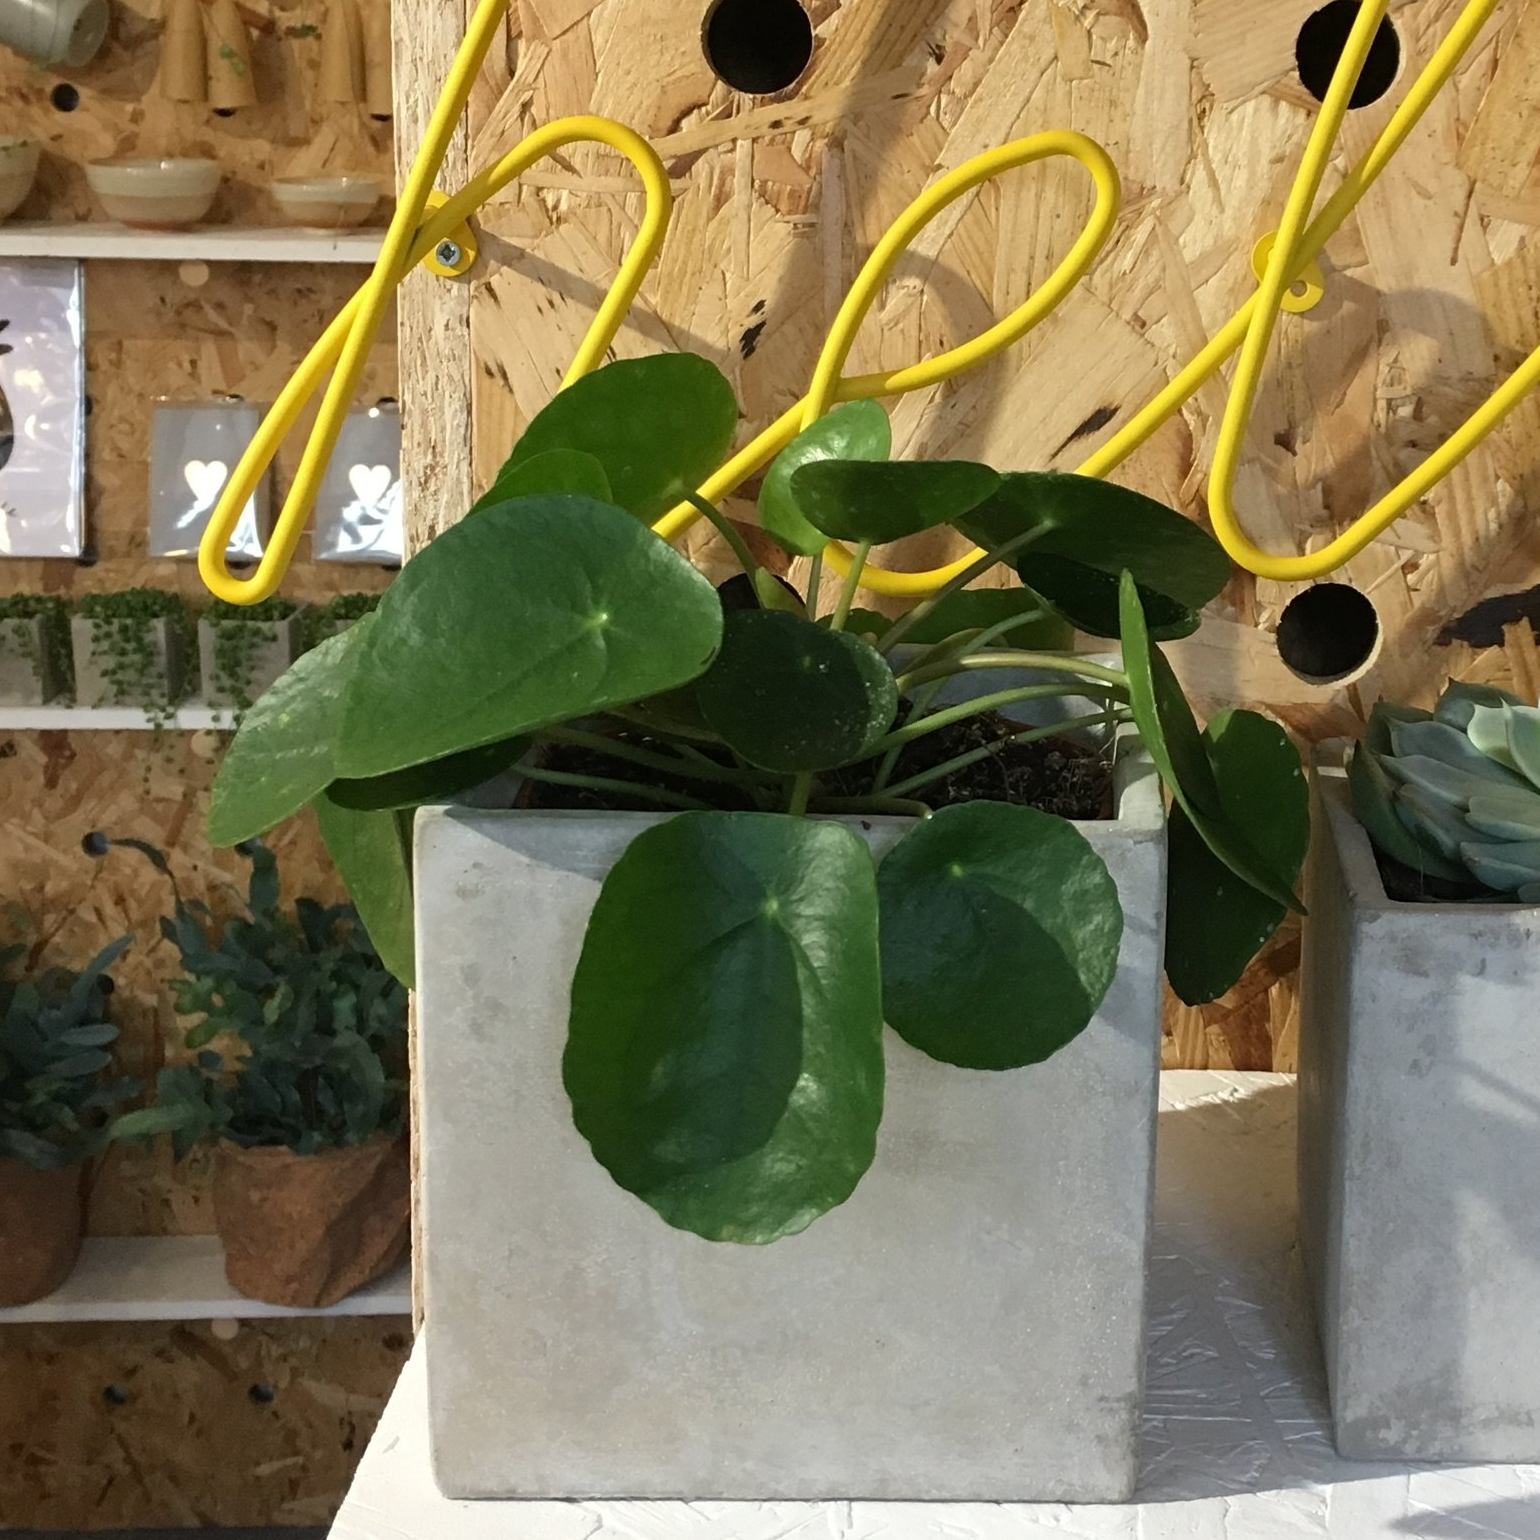 Chines Money Plant/Pilea Peperomioides - Light - Plenty, please Water - Keep moist but not over-watered Likes - Well-drained soil Hates - Direct sunlight will scorch those pancake leavesPet Friendly - Yes